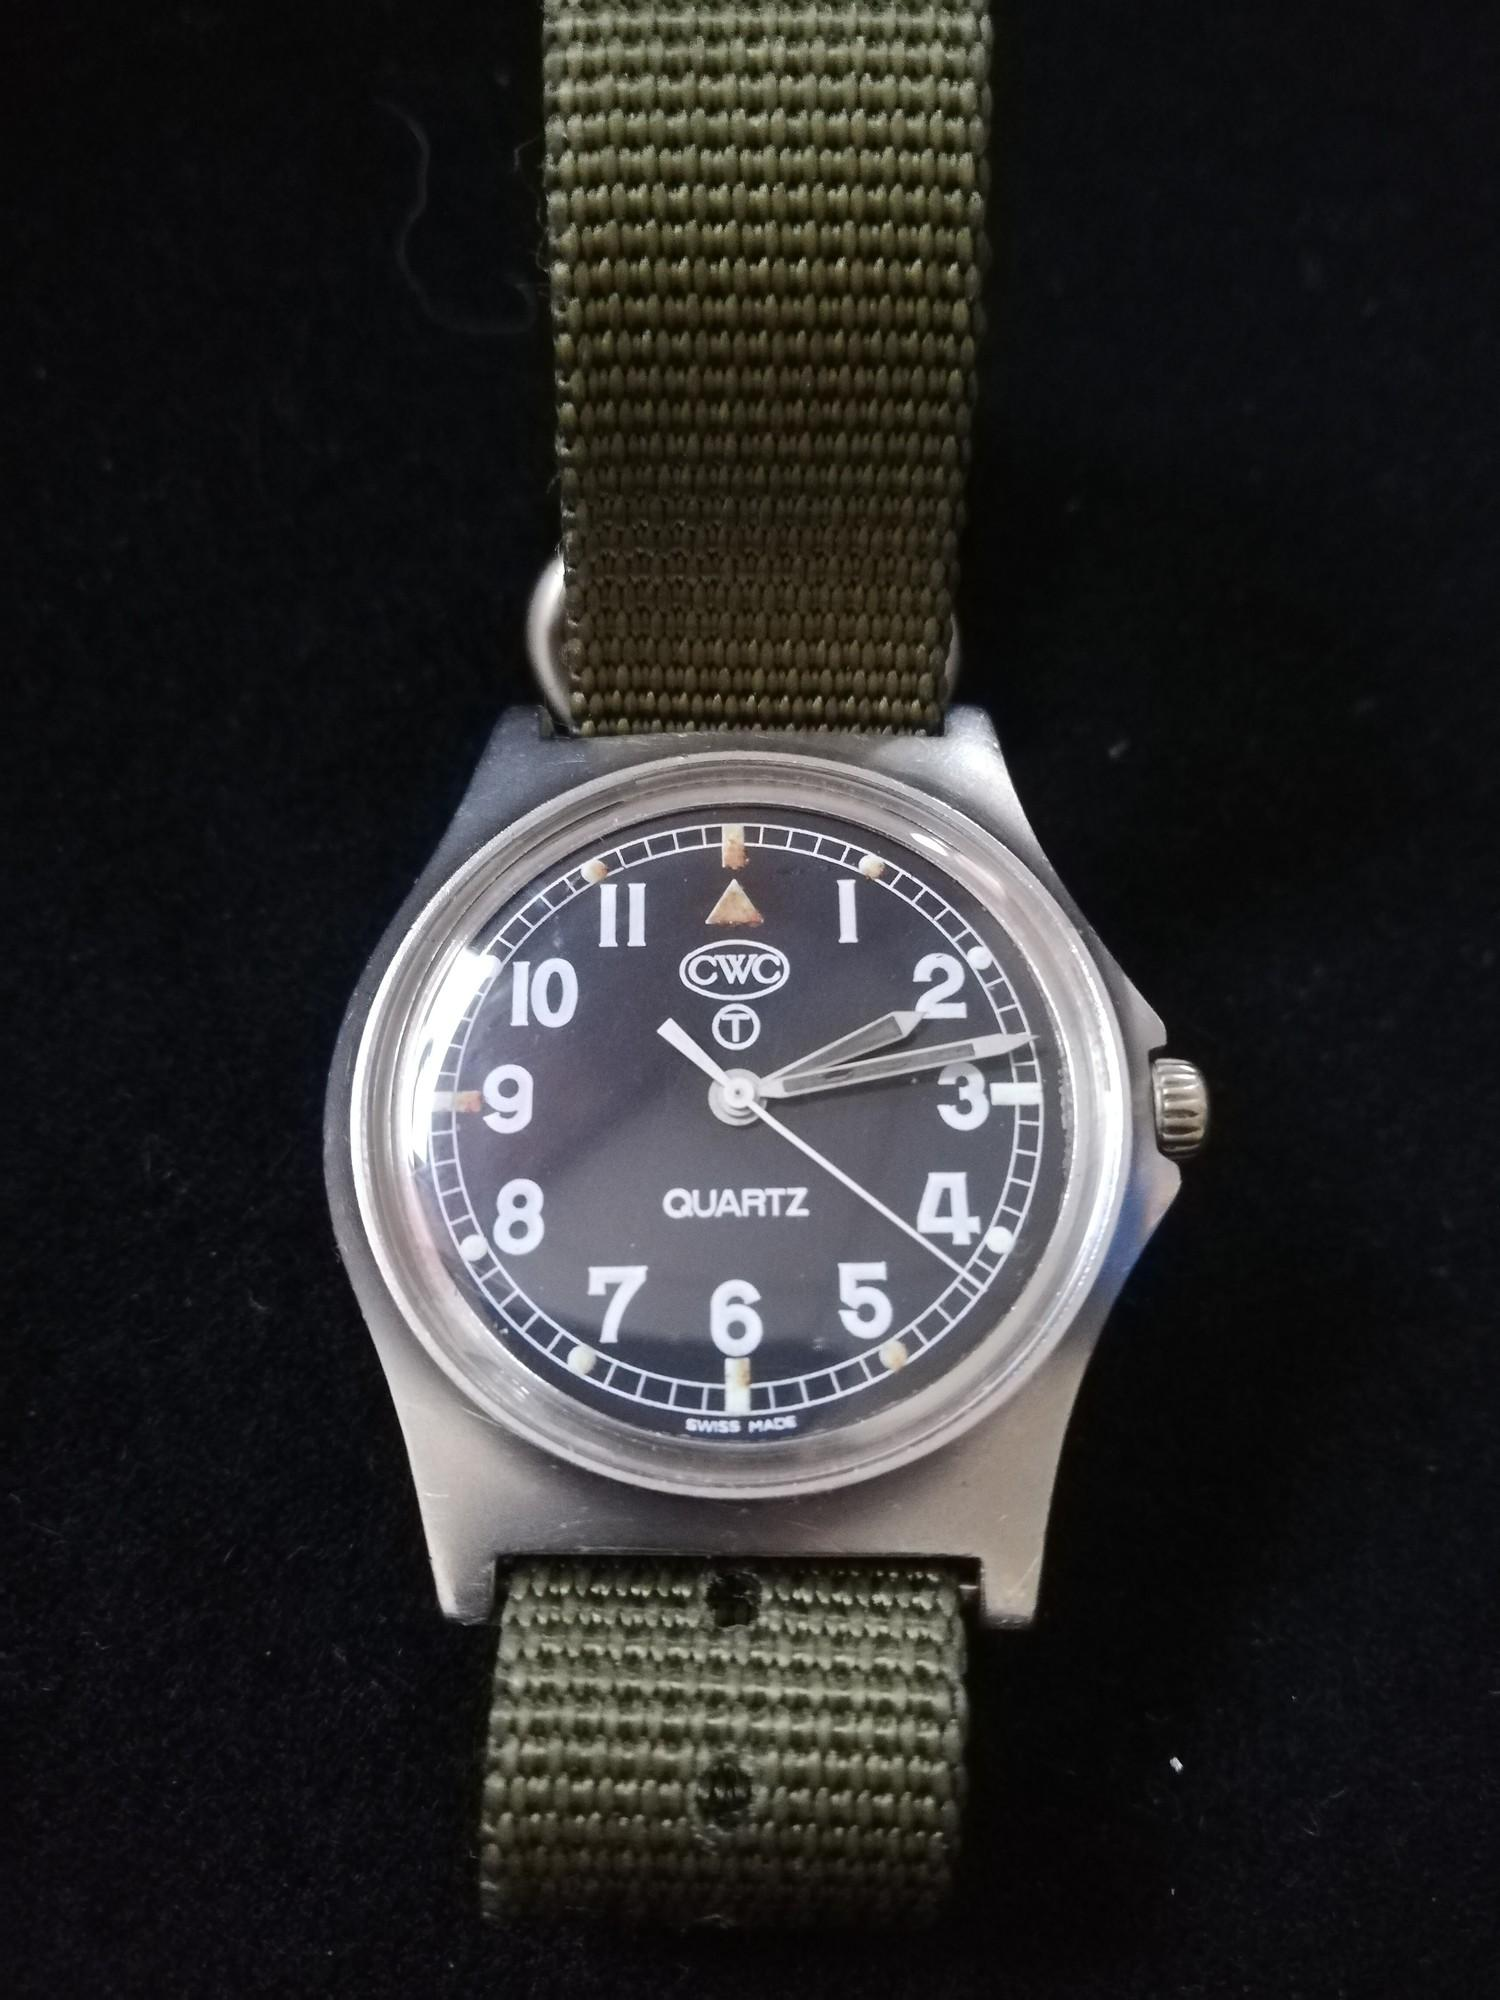 CWC (Cabot Watch Company) military quartz driven watch dated 99 to reverse